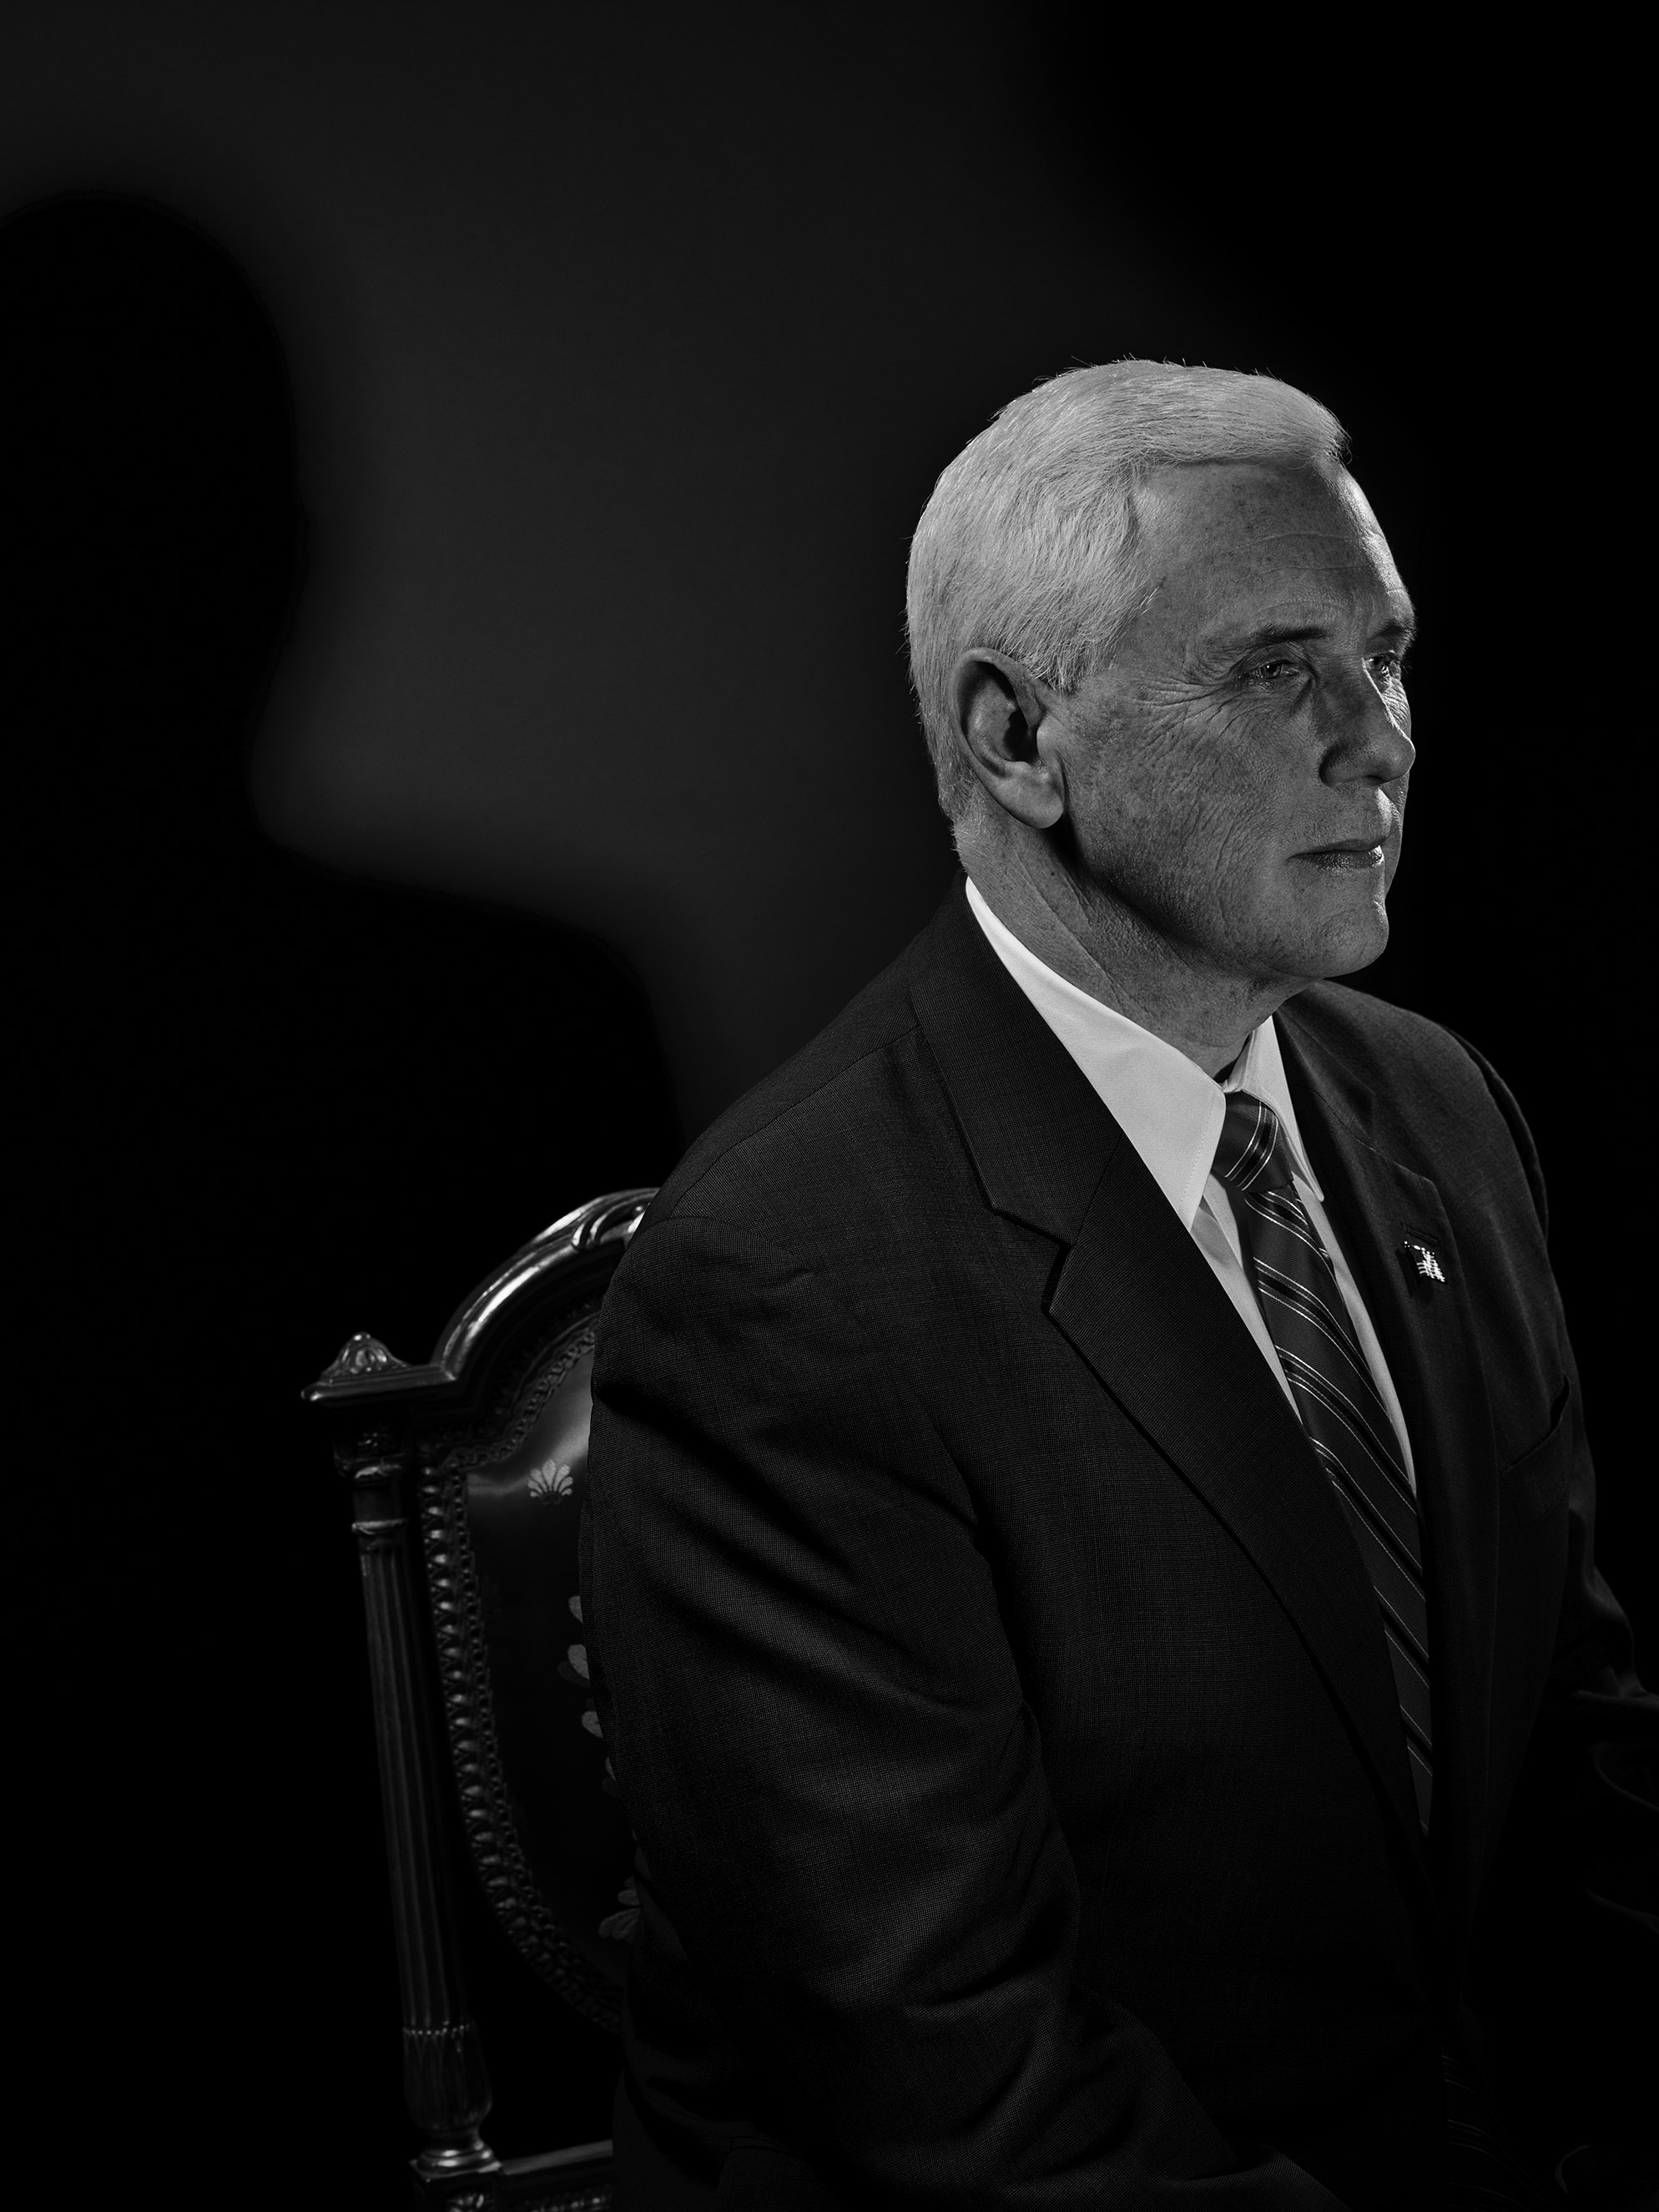 The True Believer                               A devout evangelical Christian and a former leader in the U.S. House, Vice President–elect Mike Pence will help Trump navigate the agendas of conservative lawmakers and activists.                               From                                 See Portraits of Donald Trump's Most Trusted Advisers